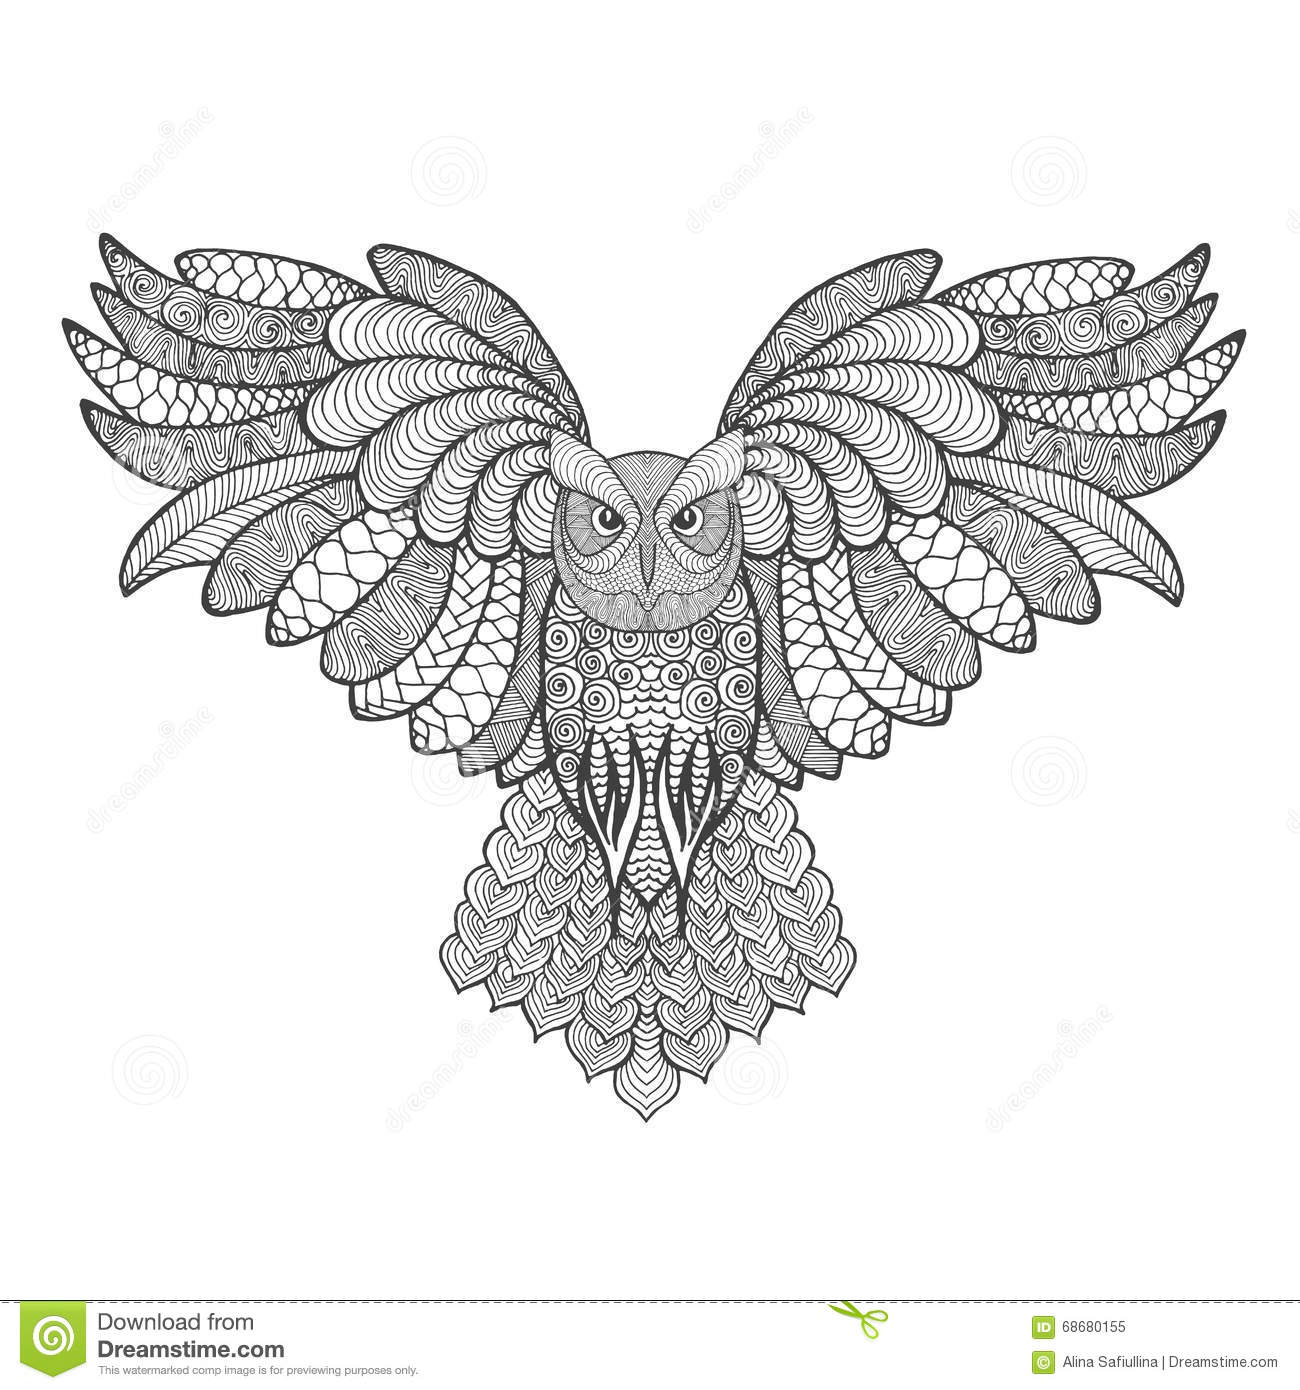 Eagle-owl coloring #3, Download drawings